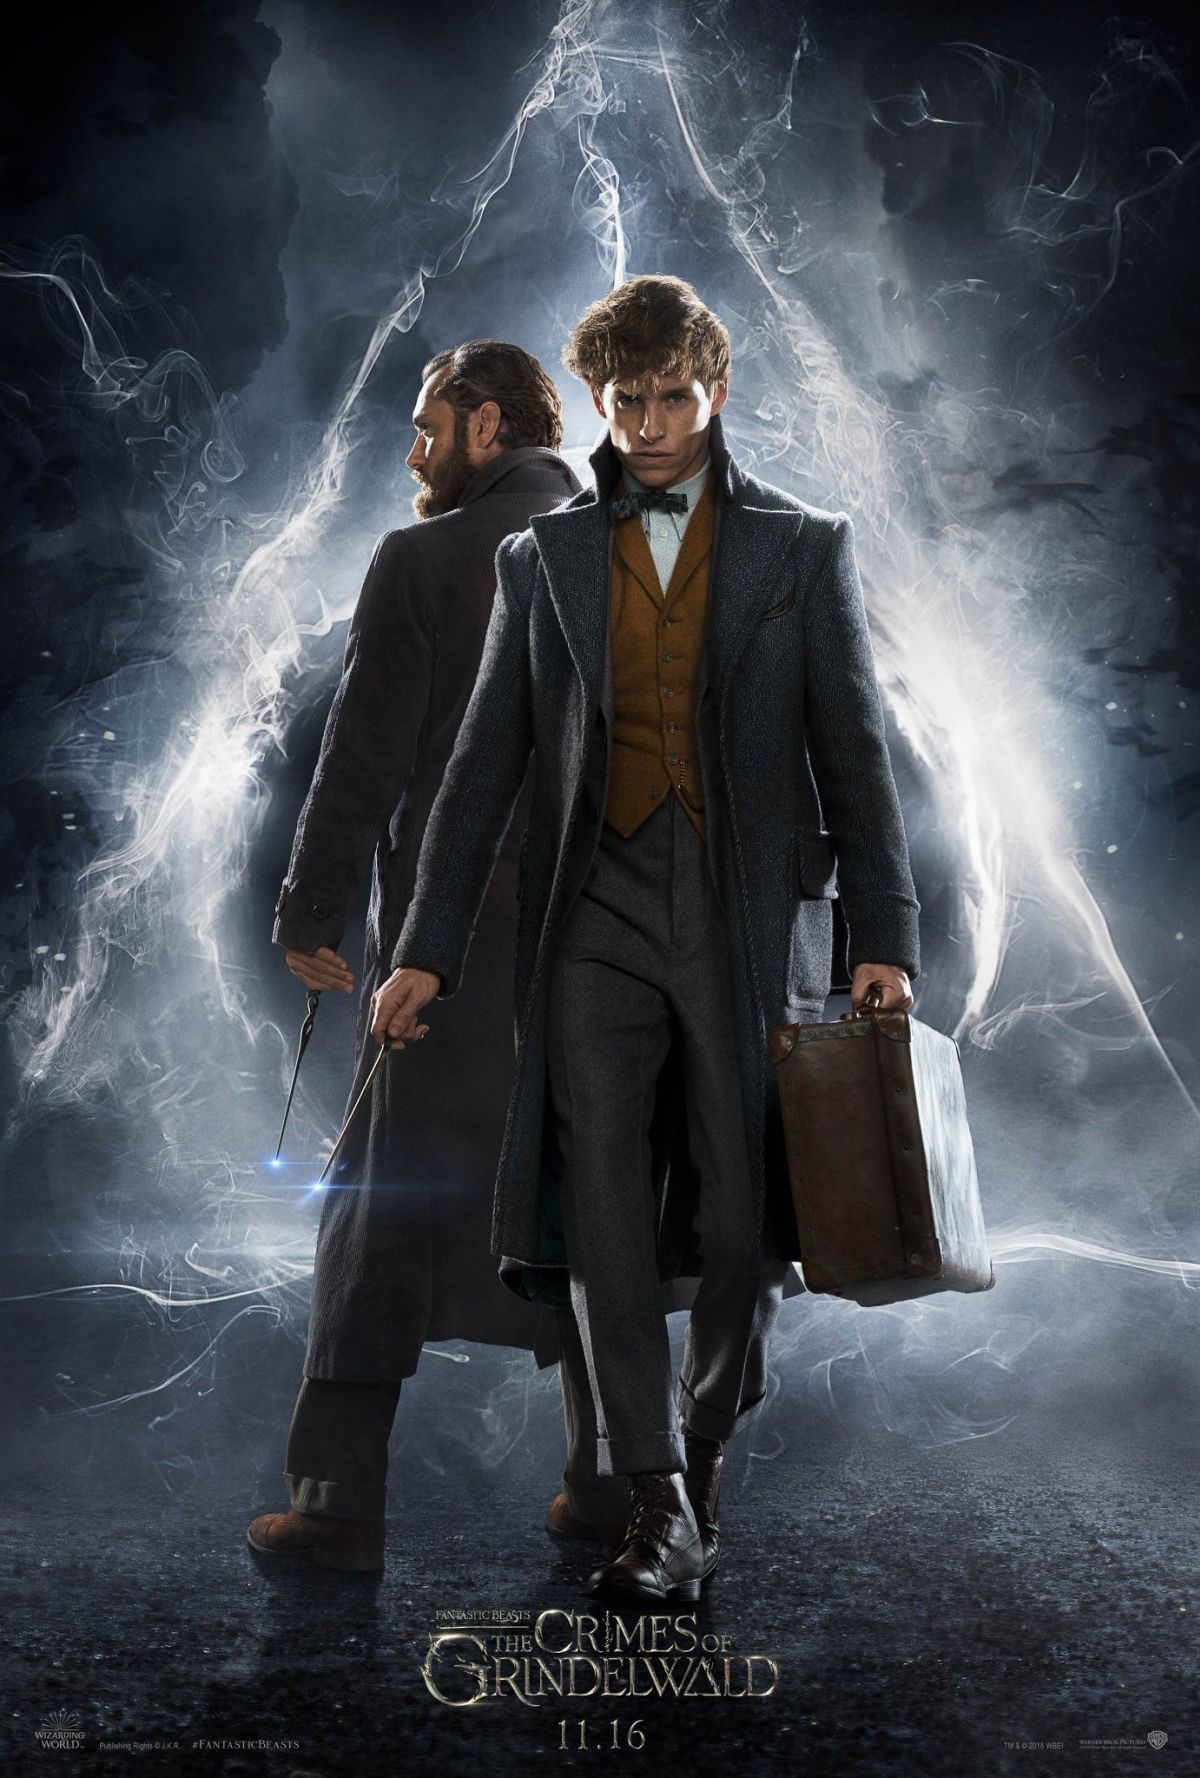 Fantastic-Beasts-The-Crimes-of-Grindelwald-poster-2.jpg